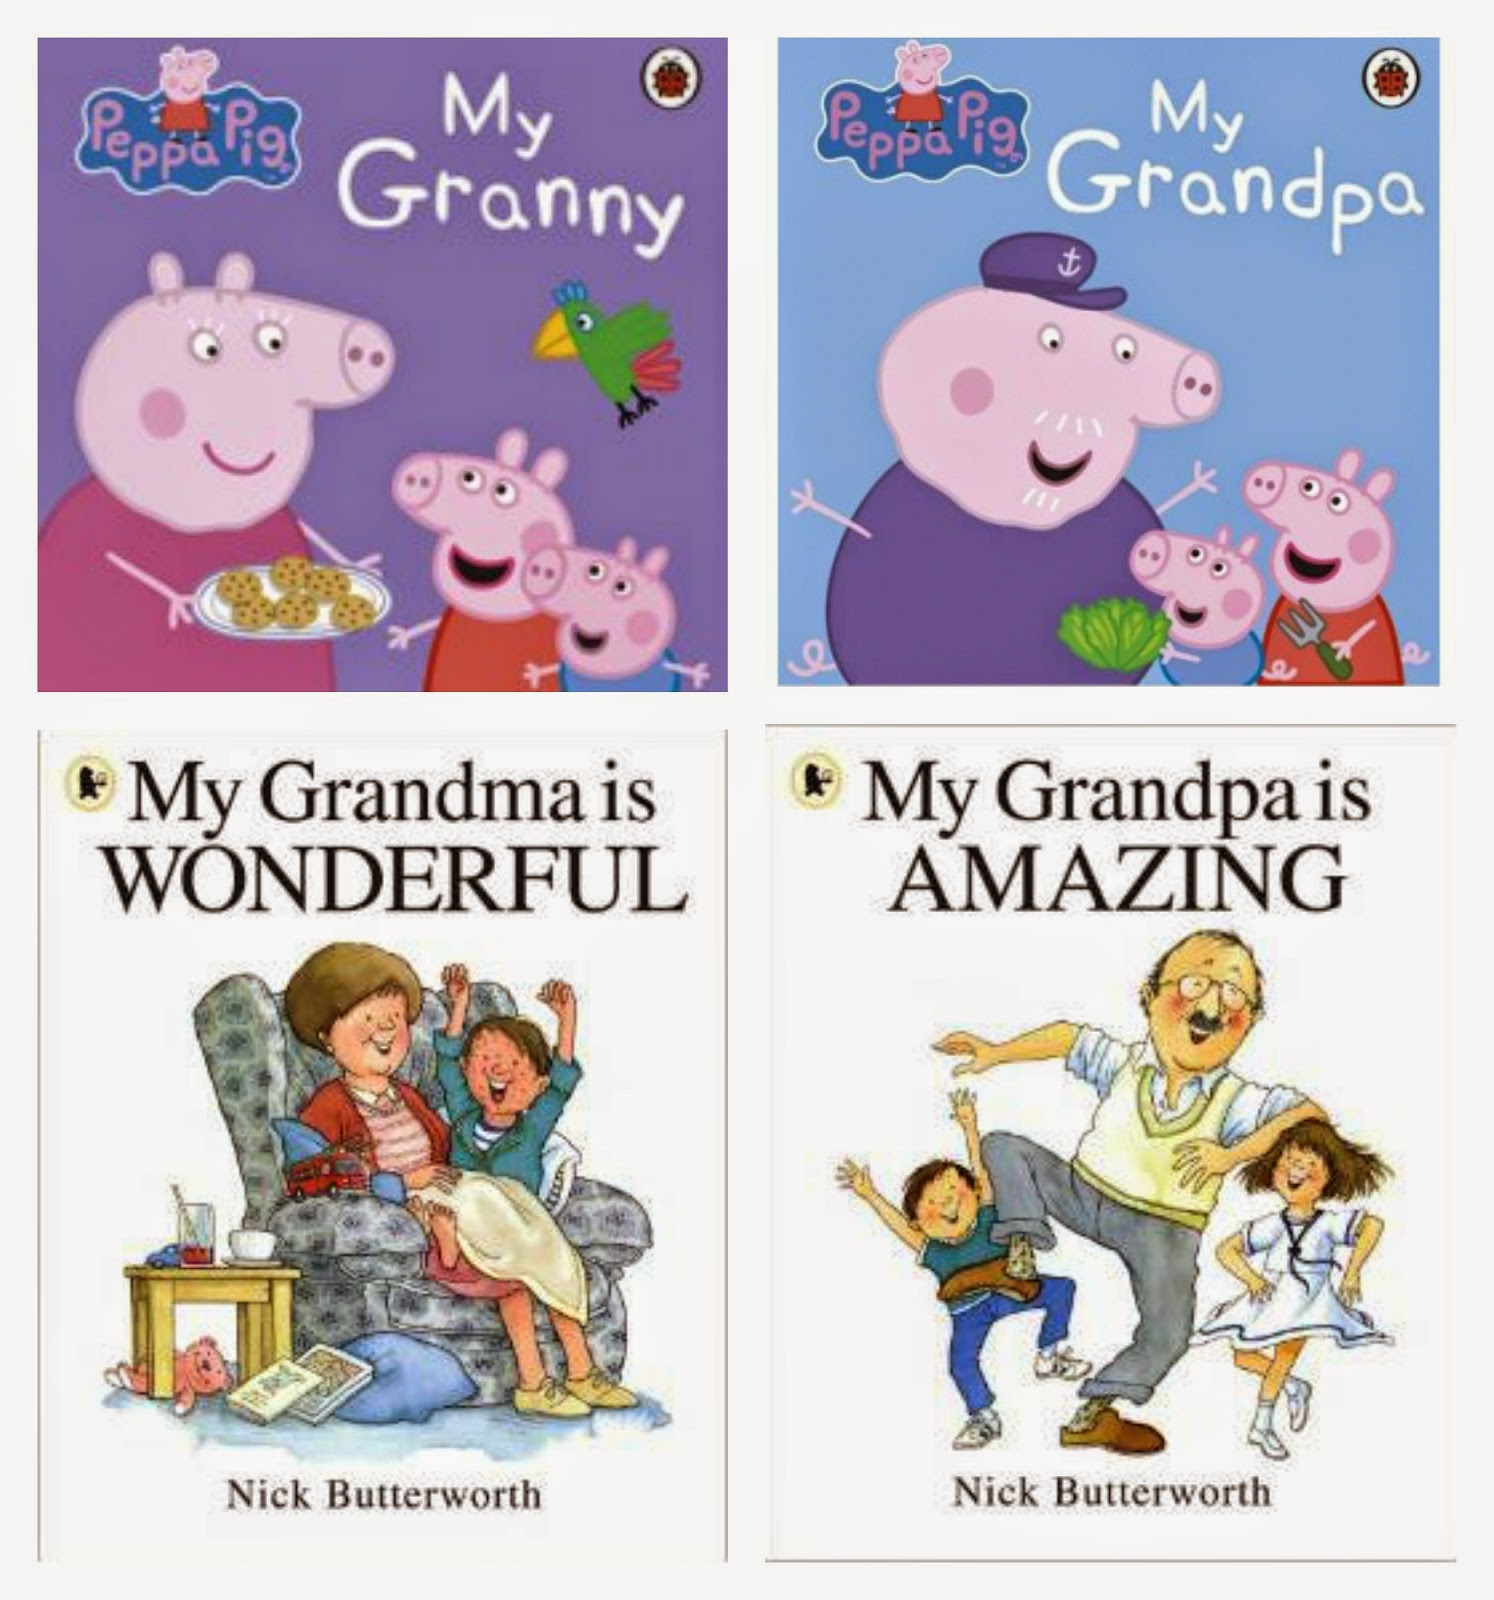 Celebrate Grandparents day with these cute reads..|amazon | books | book club |sunday night bookclub|mamasVIb | blogger | peppa pig | nick butter worth | books | grandma | grandpa | grandparents | national grandparents day | books for many | grandad | nan | grandpa | books for parents | gifts ideas | mamasvIb